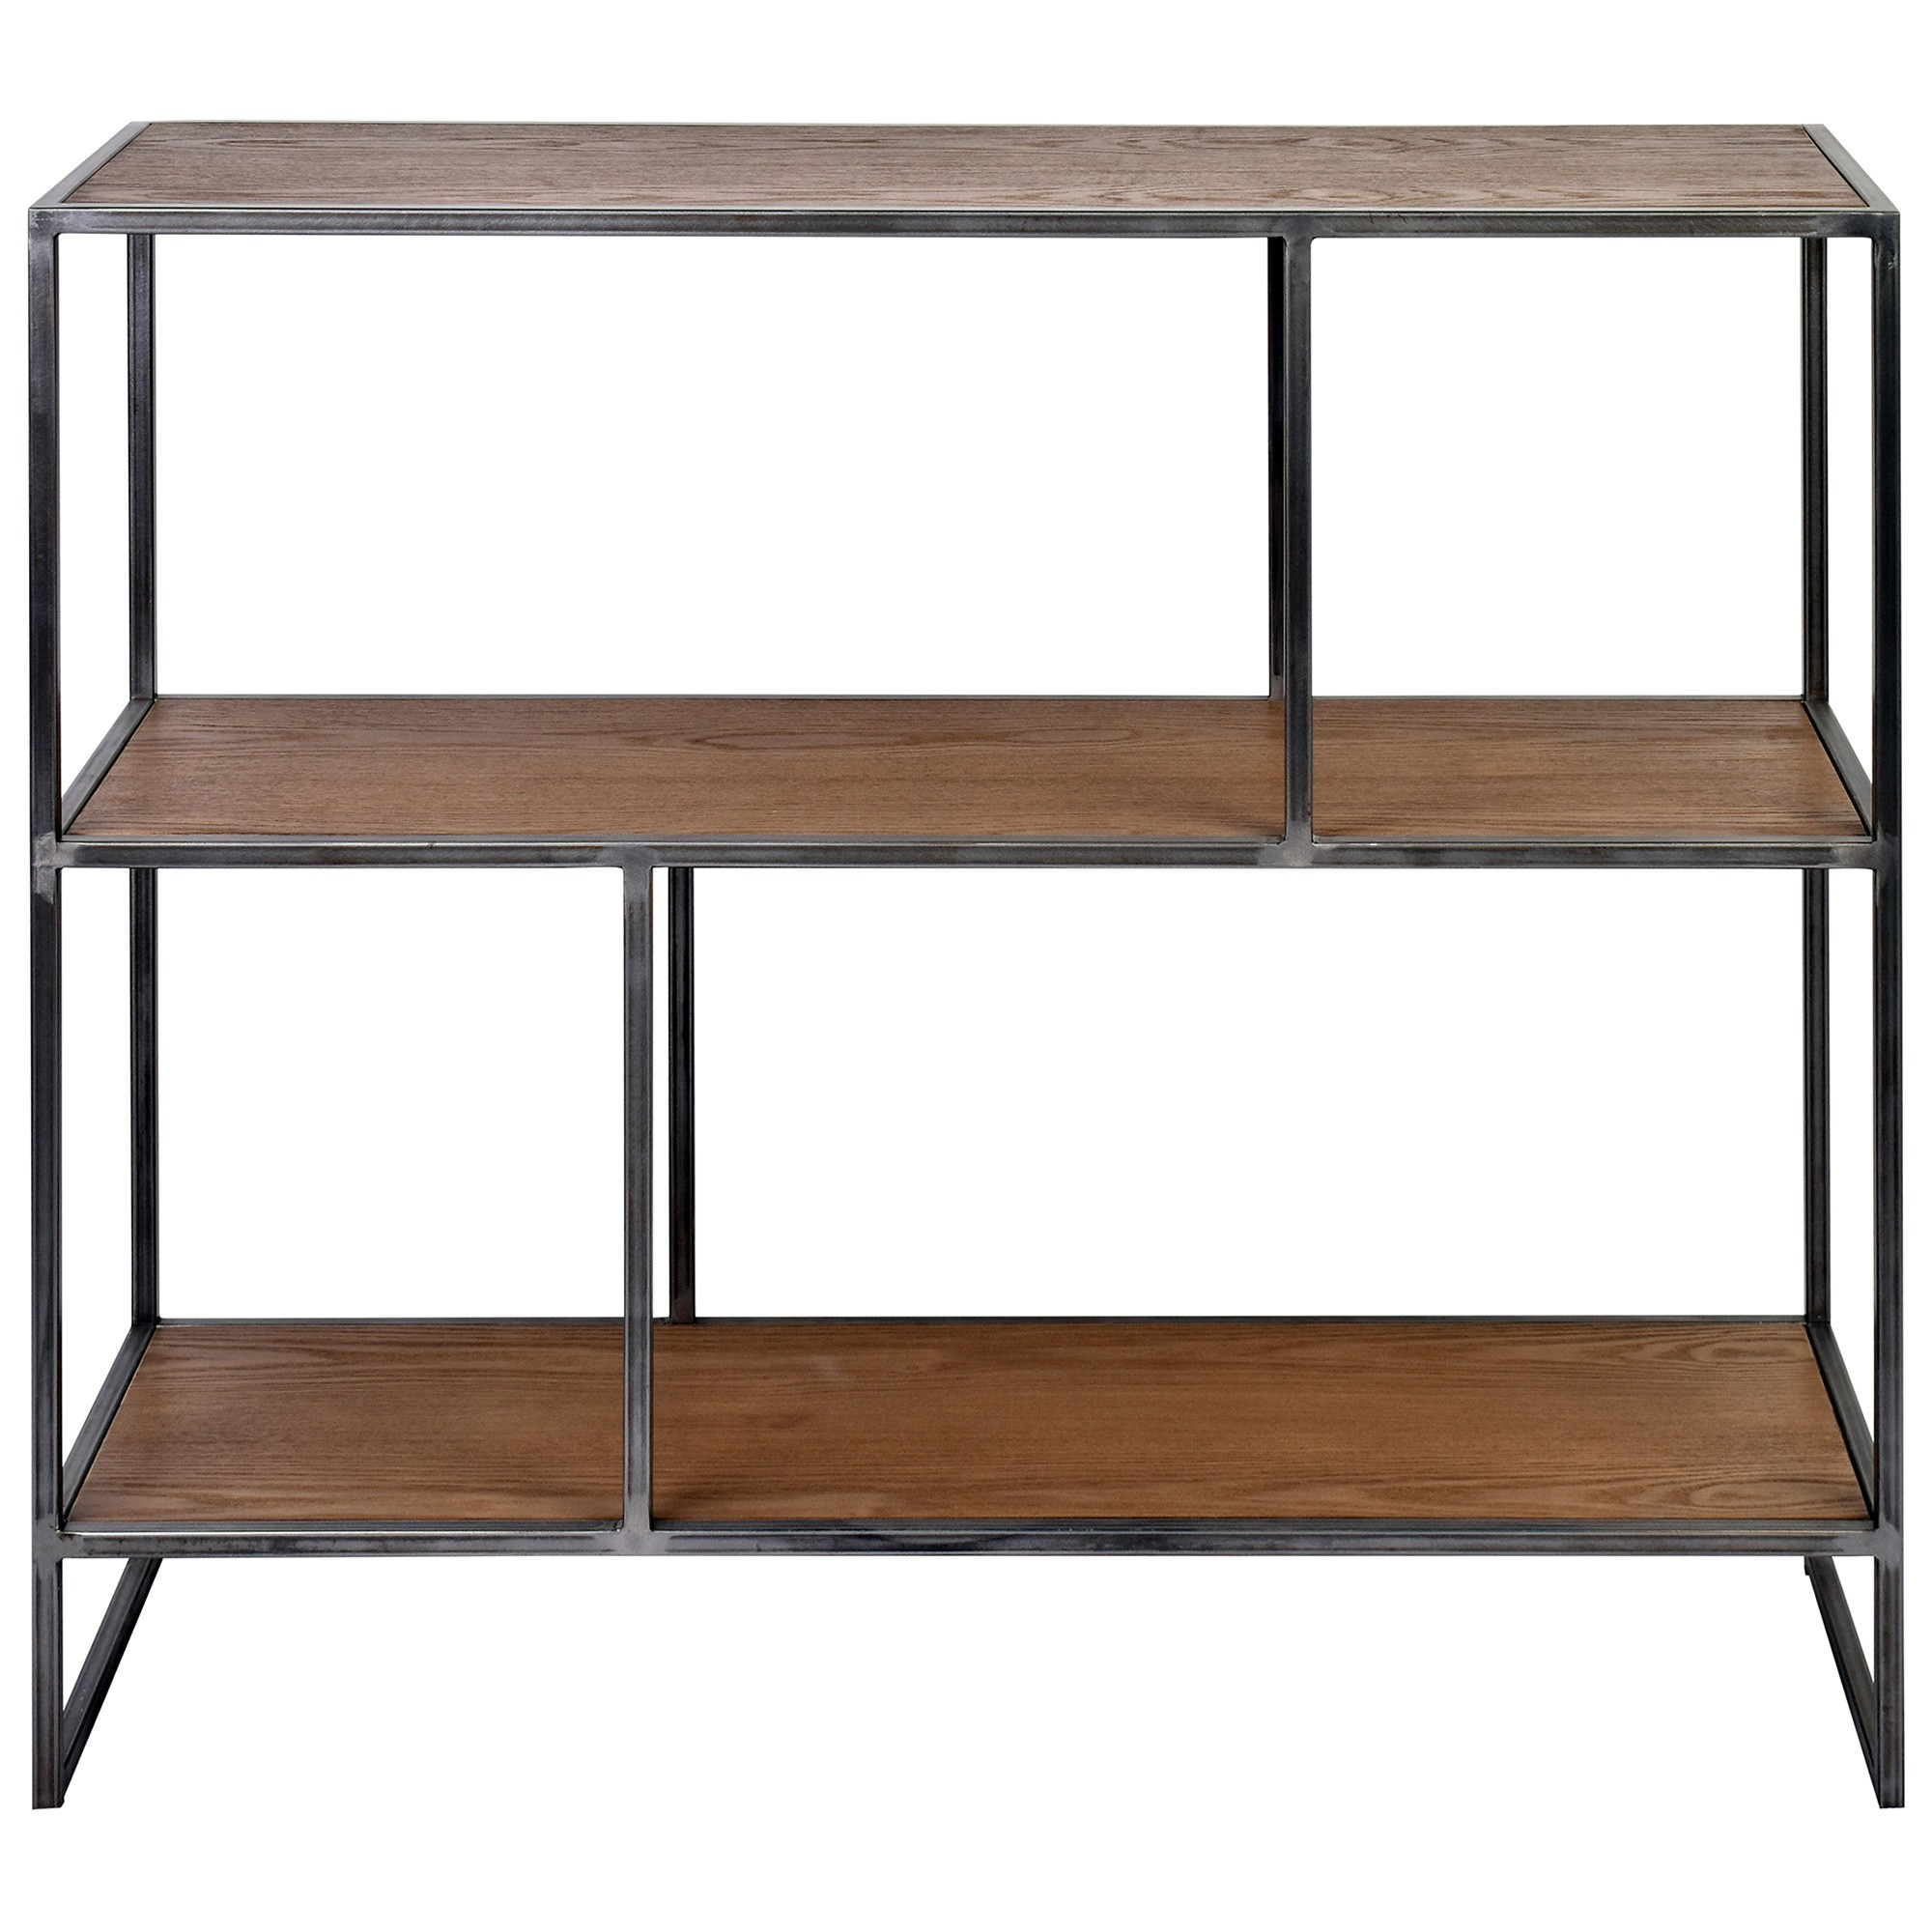 Dyne Ashwood & Iron Display Shelf, 100x86cm